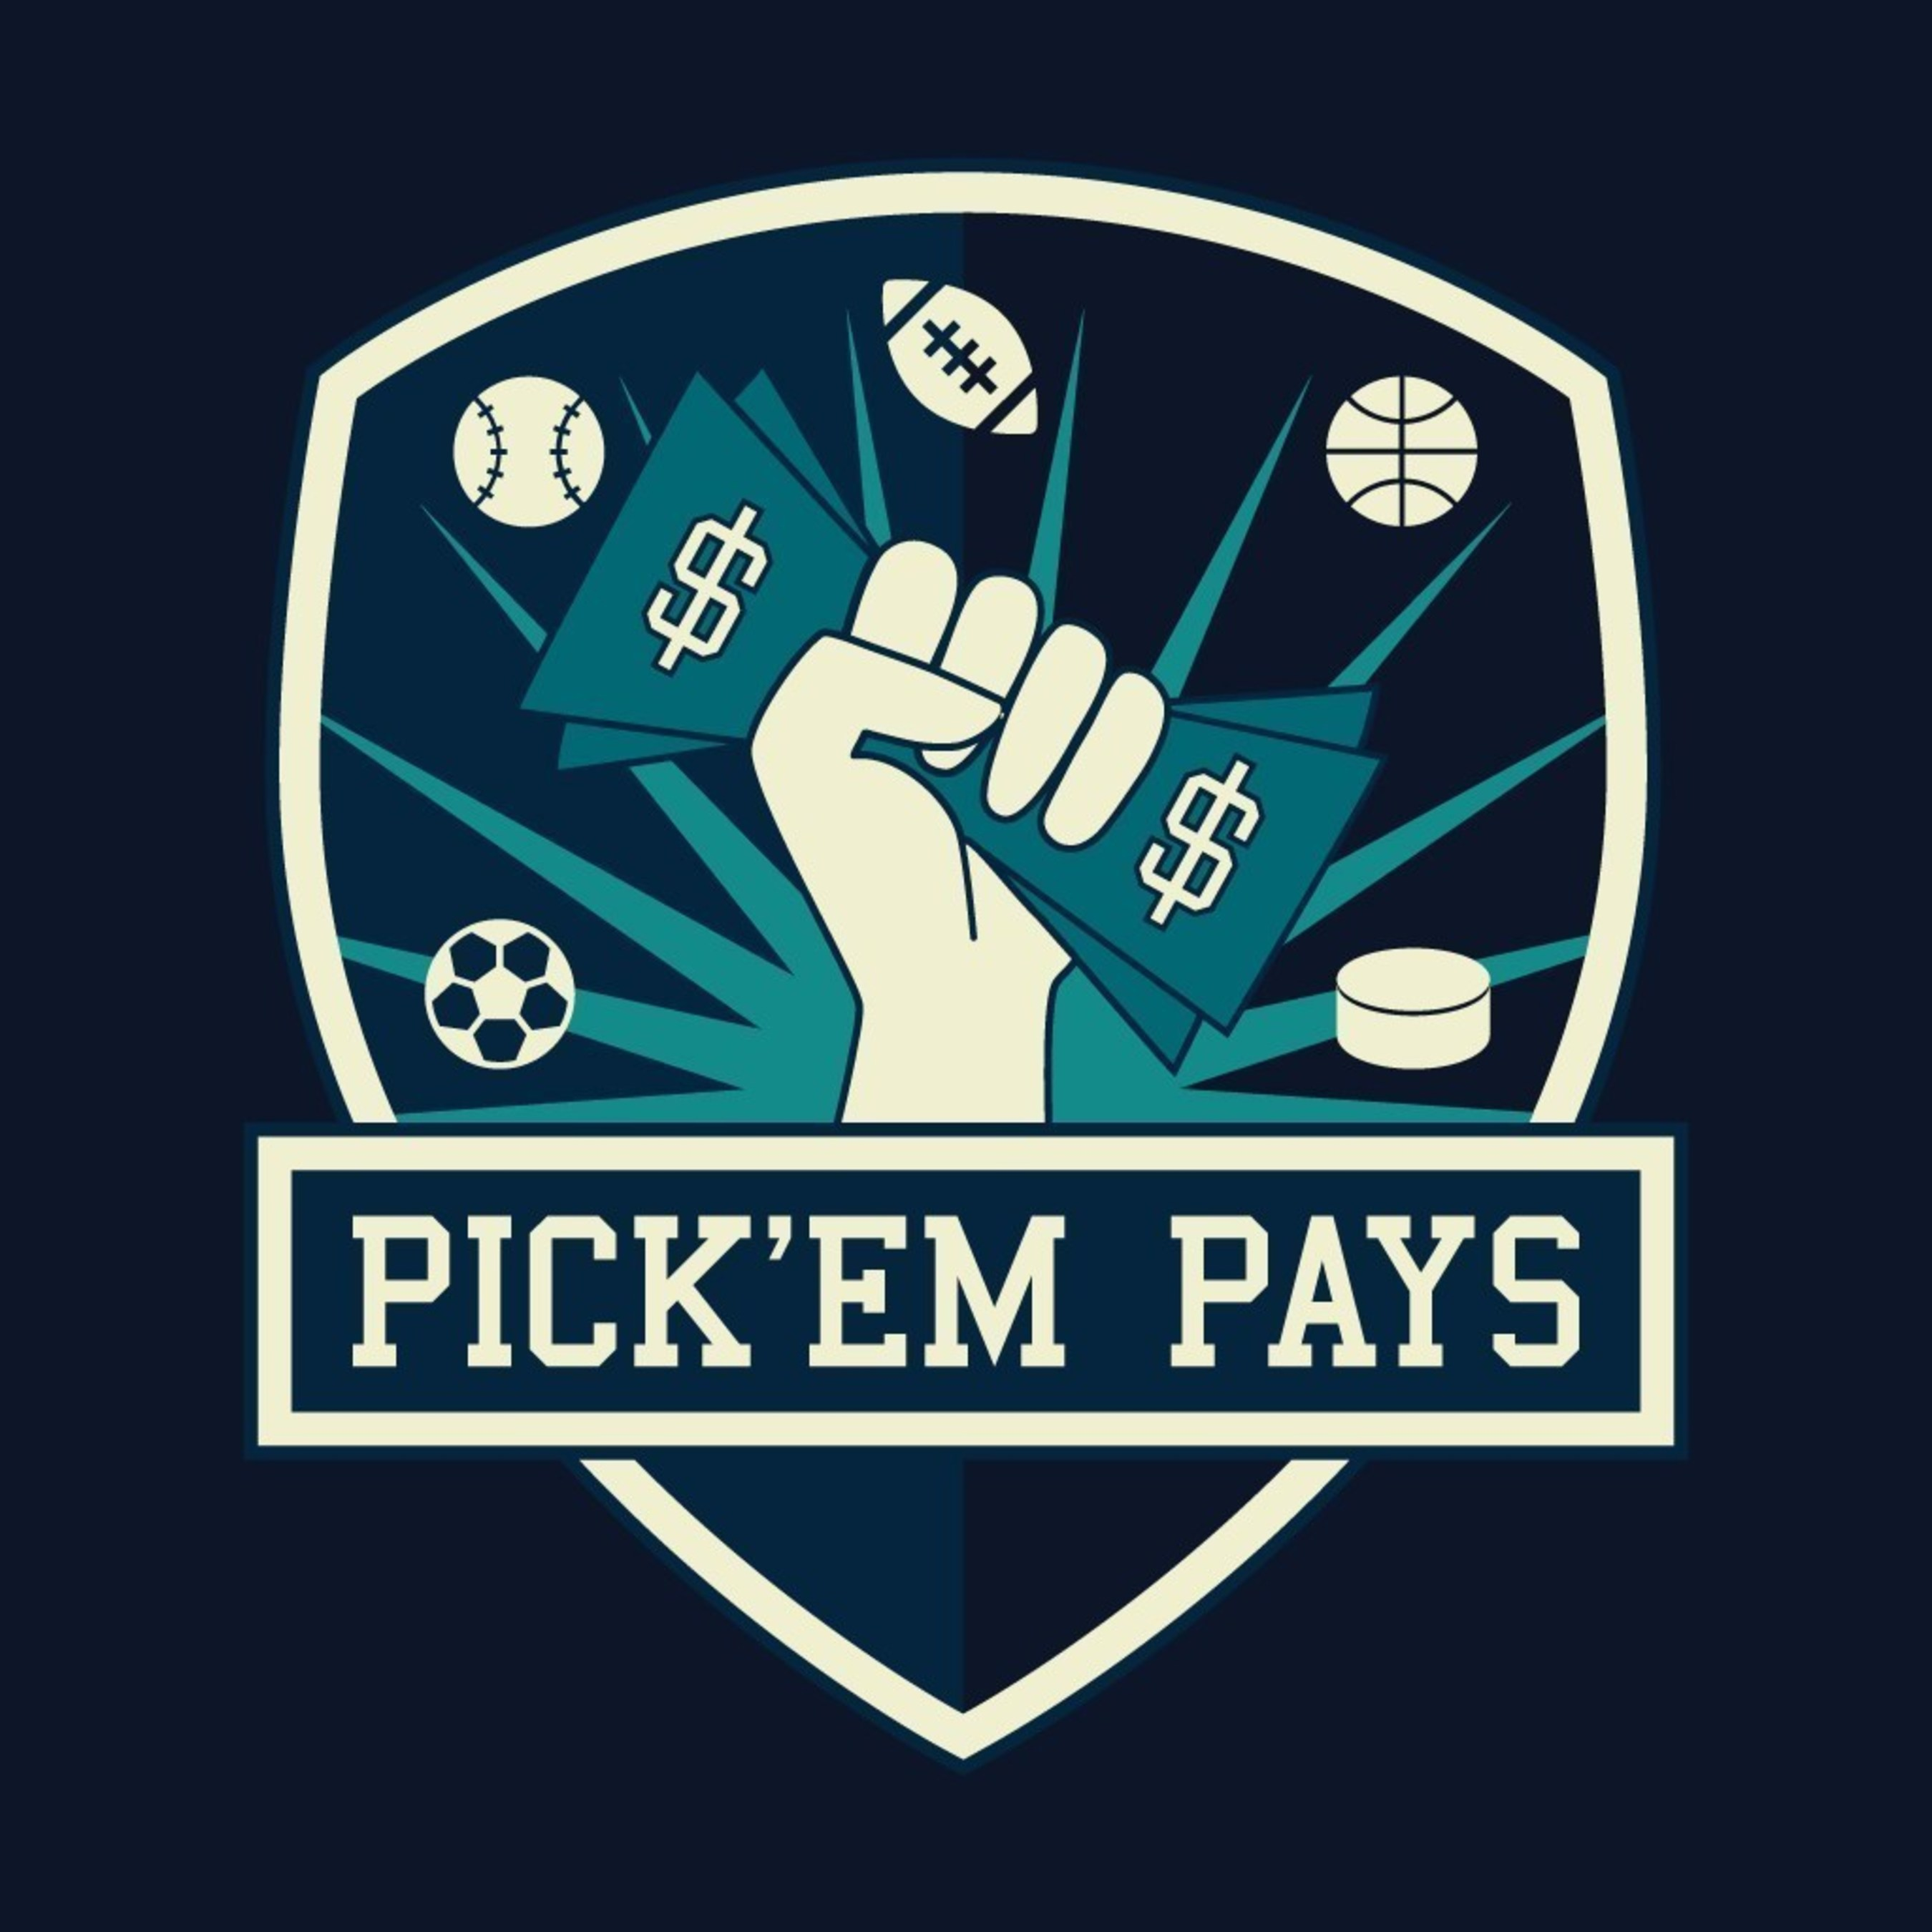 Pick'em Pays Launches the Next Evolution of Daily Sports Contests. 100% Winners, 100% Legal